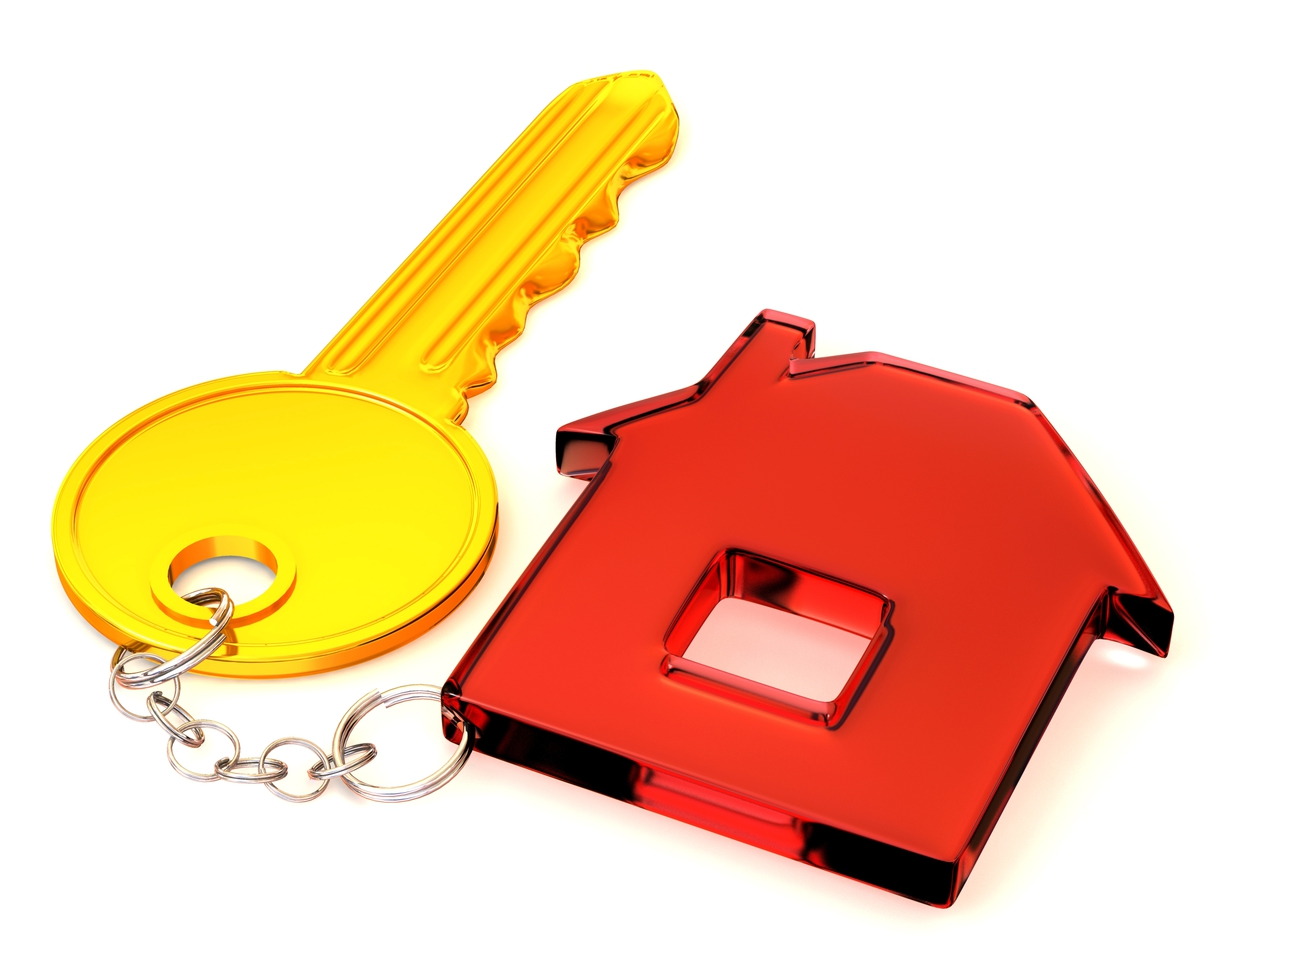 A set of house keys, with a red house keychain and a yellow gold key